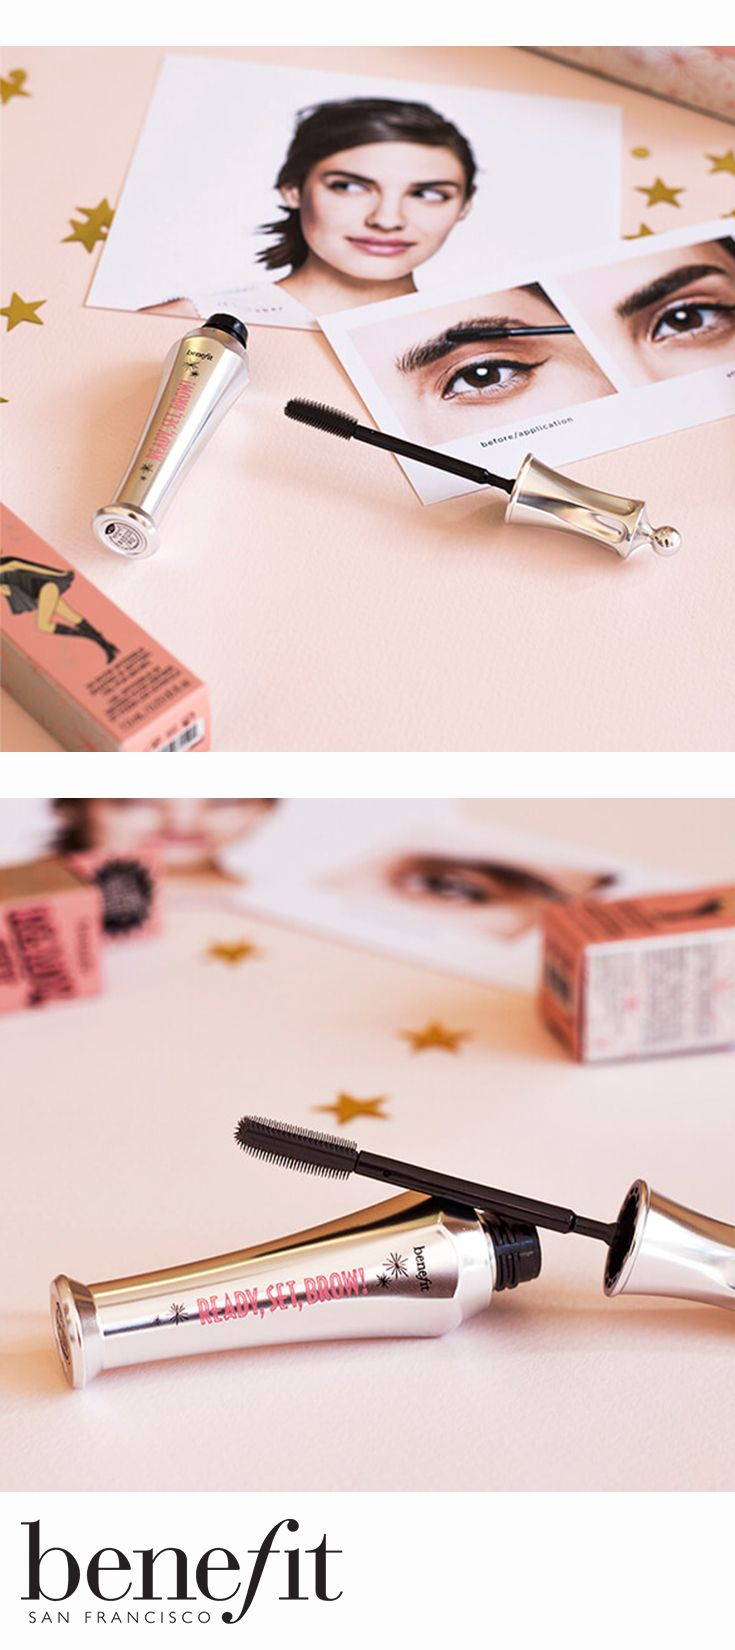 Clear brow gel shapes & tames brows and locks on makeup so brows don't pull a disappearing act xx